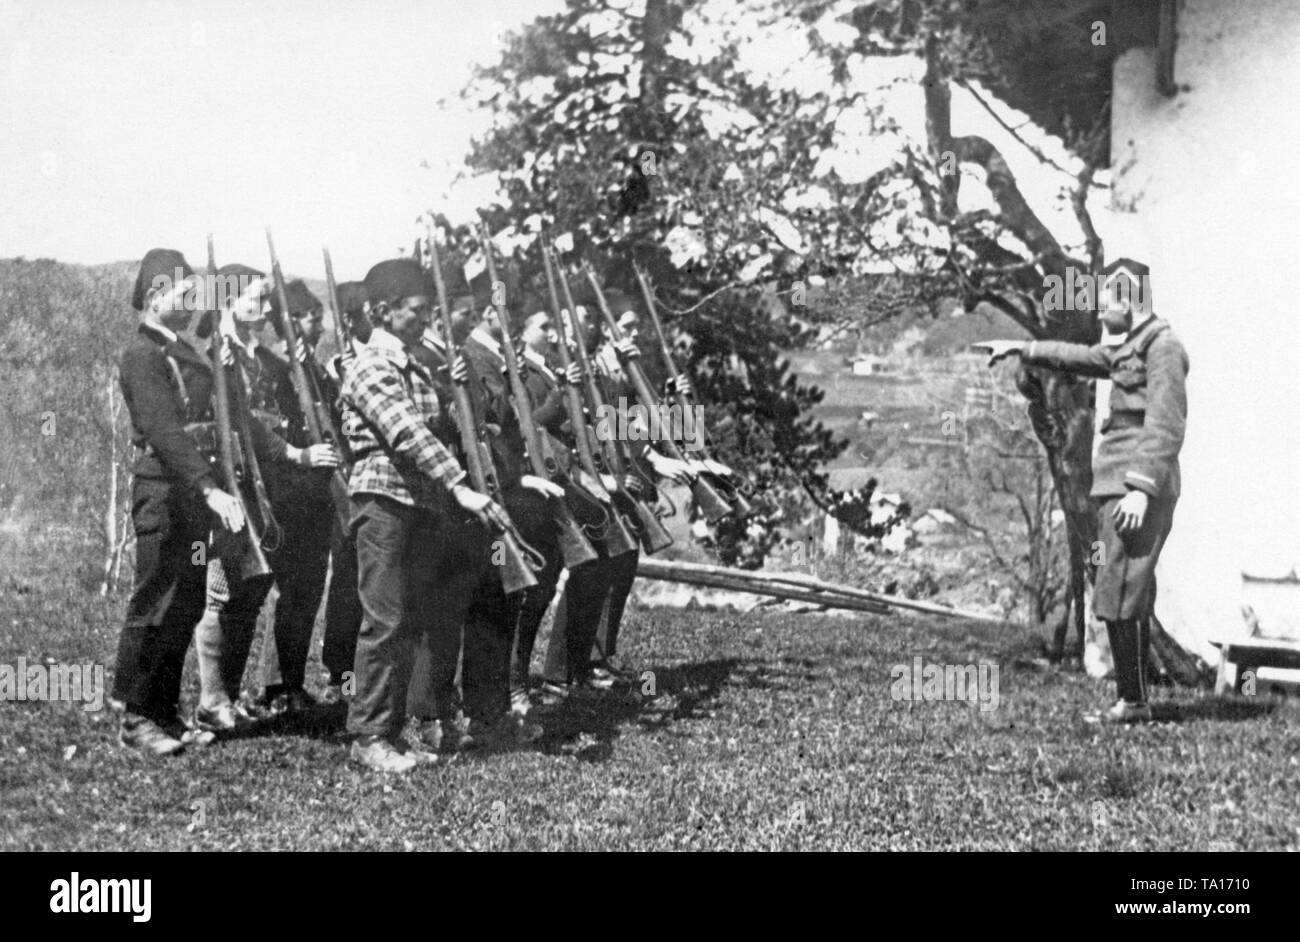 A group of young South Tyrolean men, under the guidance of an Italian officer, are doing Sunday military exercises. This was one of the radical measures for the Italianization of South Tyrol after the First World War. With regular participation in the exercises, young men were exempted from a third of their 18-month military service (undated photo). - Stock Image